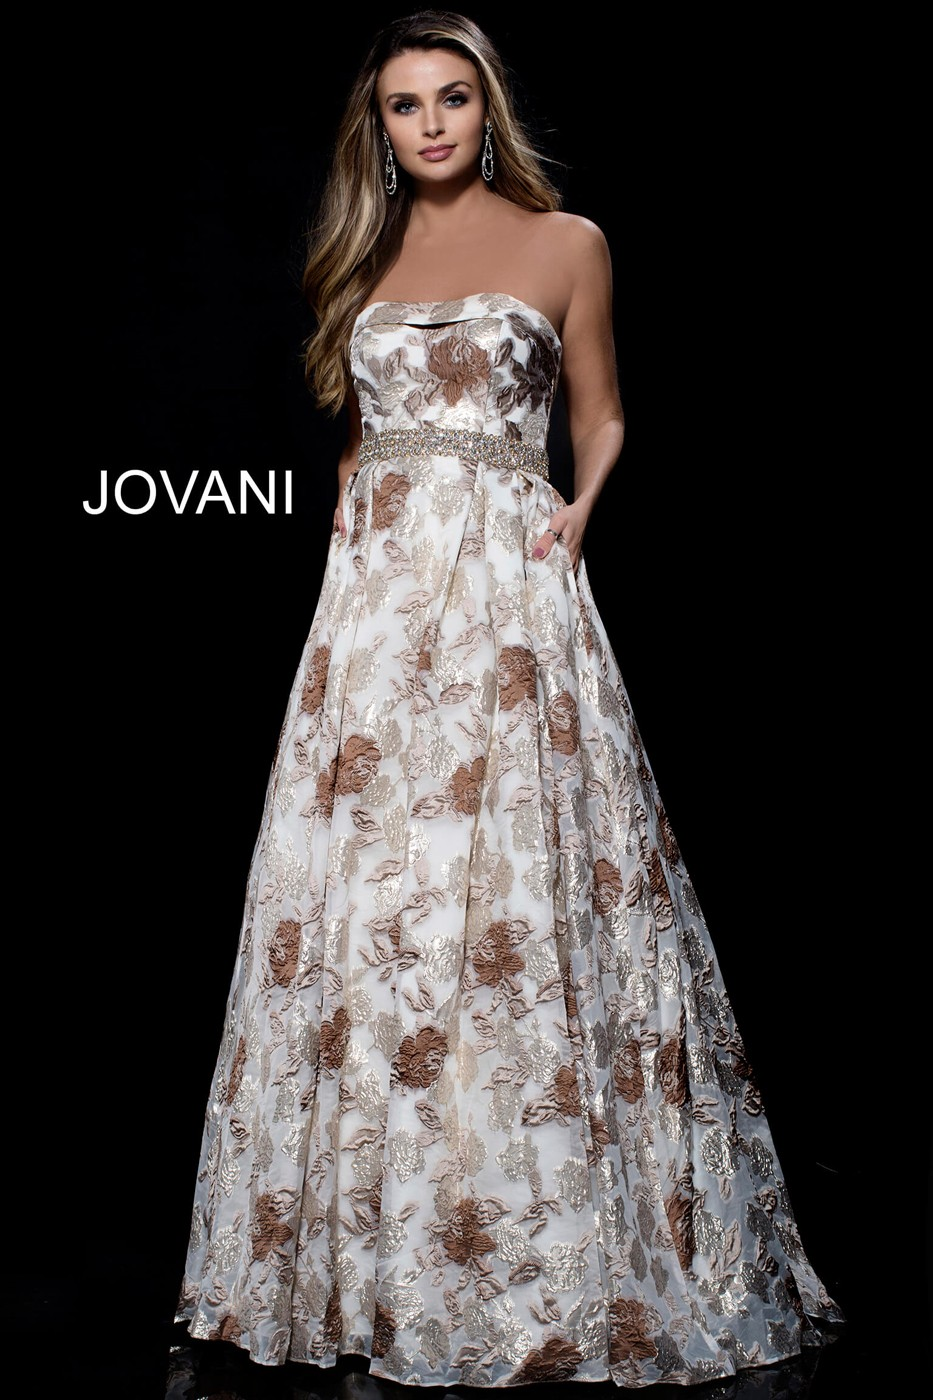 Jovani 51818 Dress - MadameBridal.com